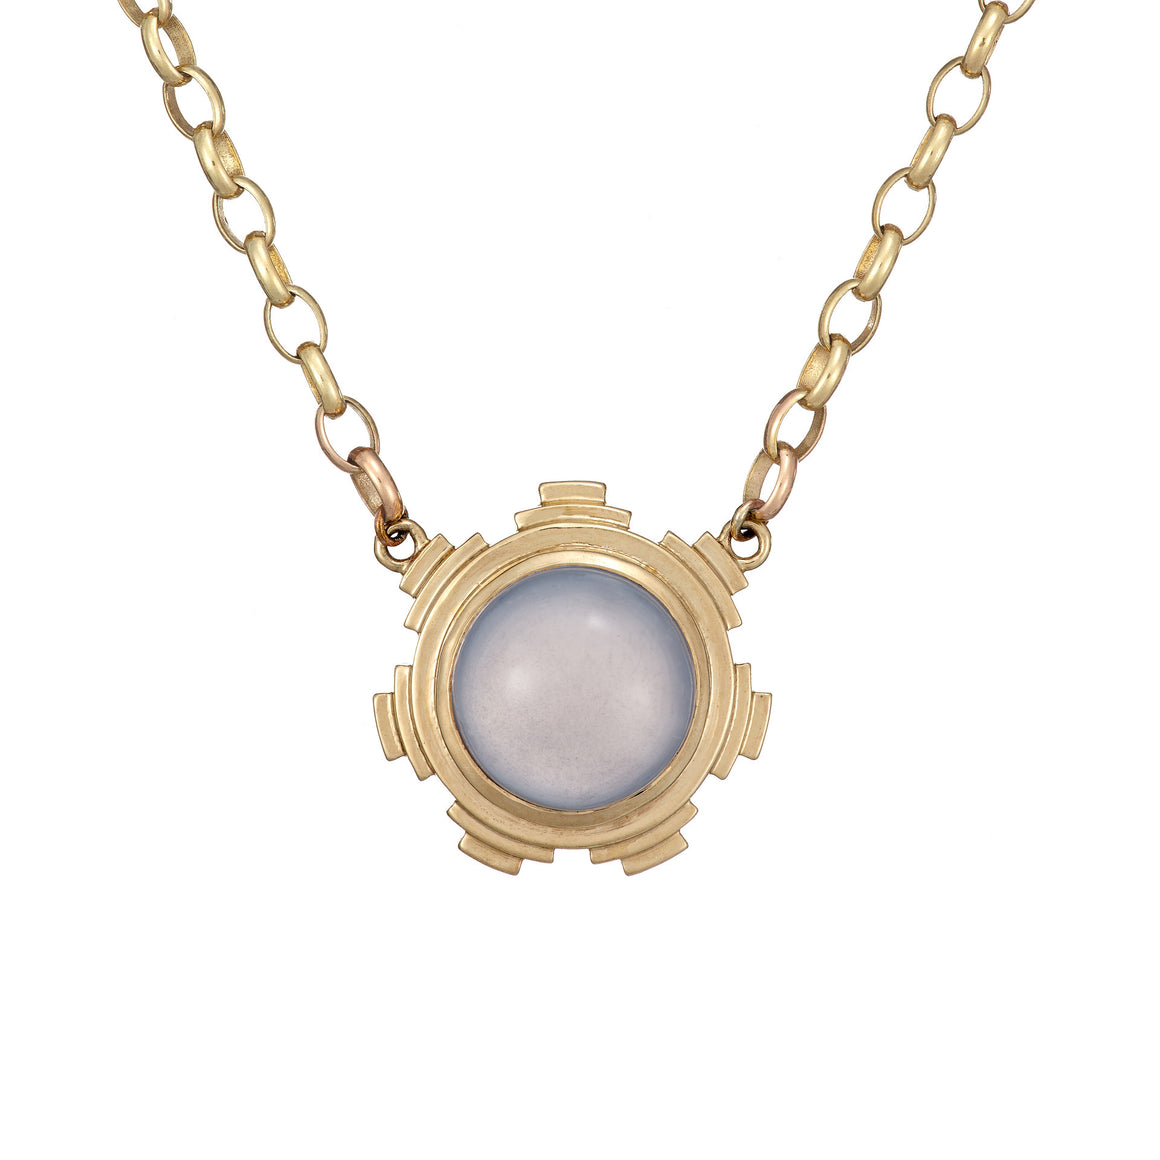 Ella Green Irish jewellery designer necklace yellow gold chalcedony van eyck light blue cabochon stone